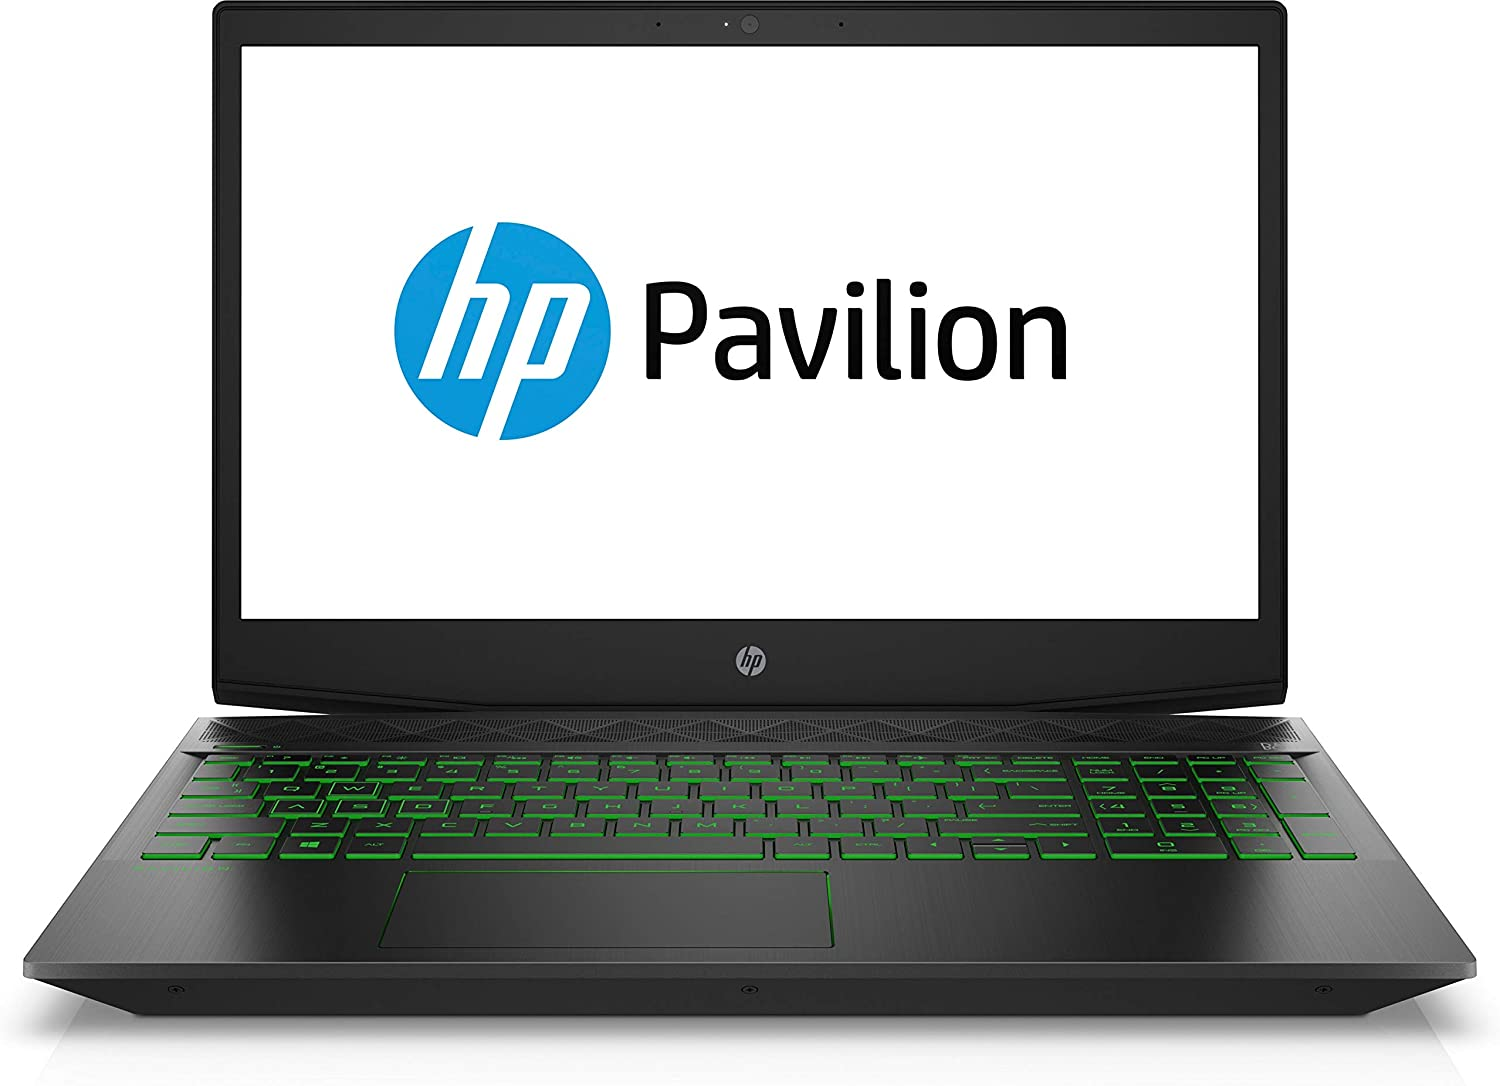 "HP Pavilion Gaming Laptop 15.6"" Full HD, Intel Core i7-8750, NVIDIA GeForce GTX 1060, 1TB HDD + 16GB Optane Memory, 8GB SDRAM"